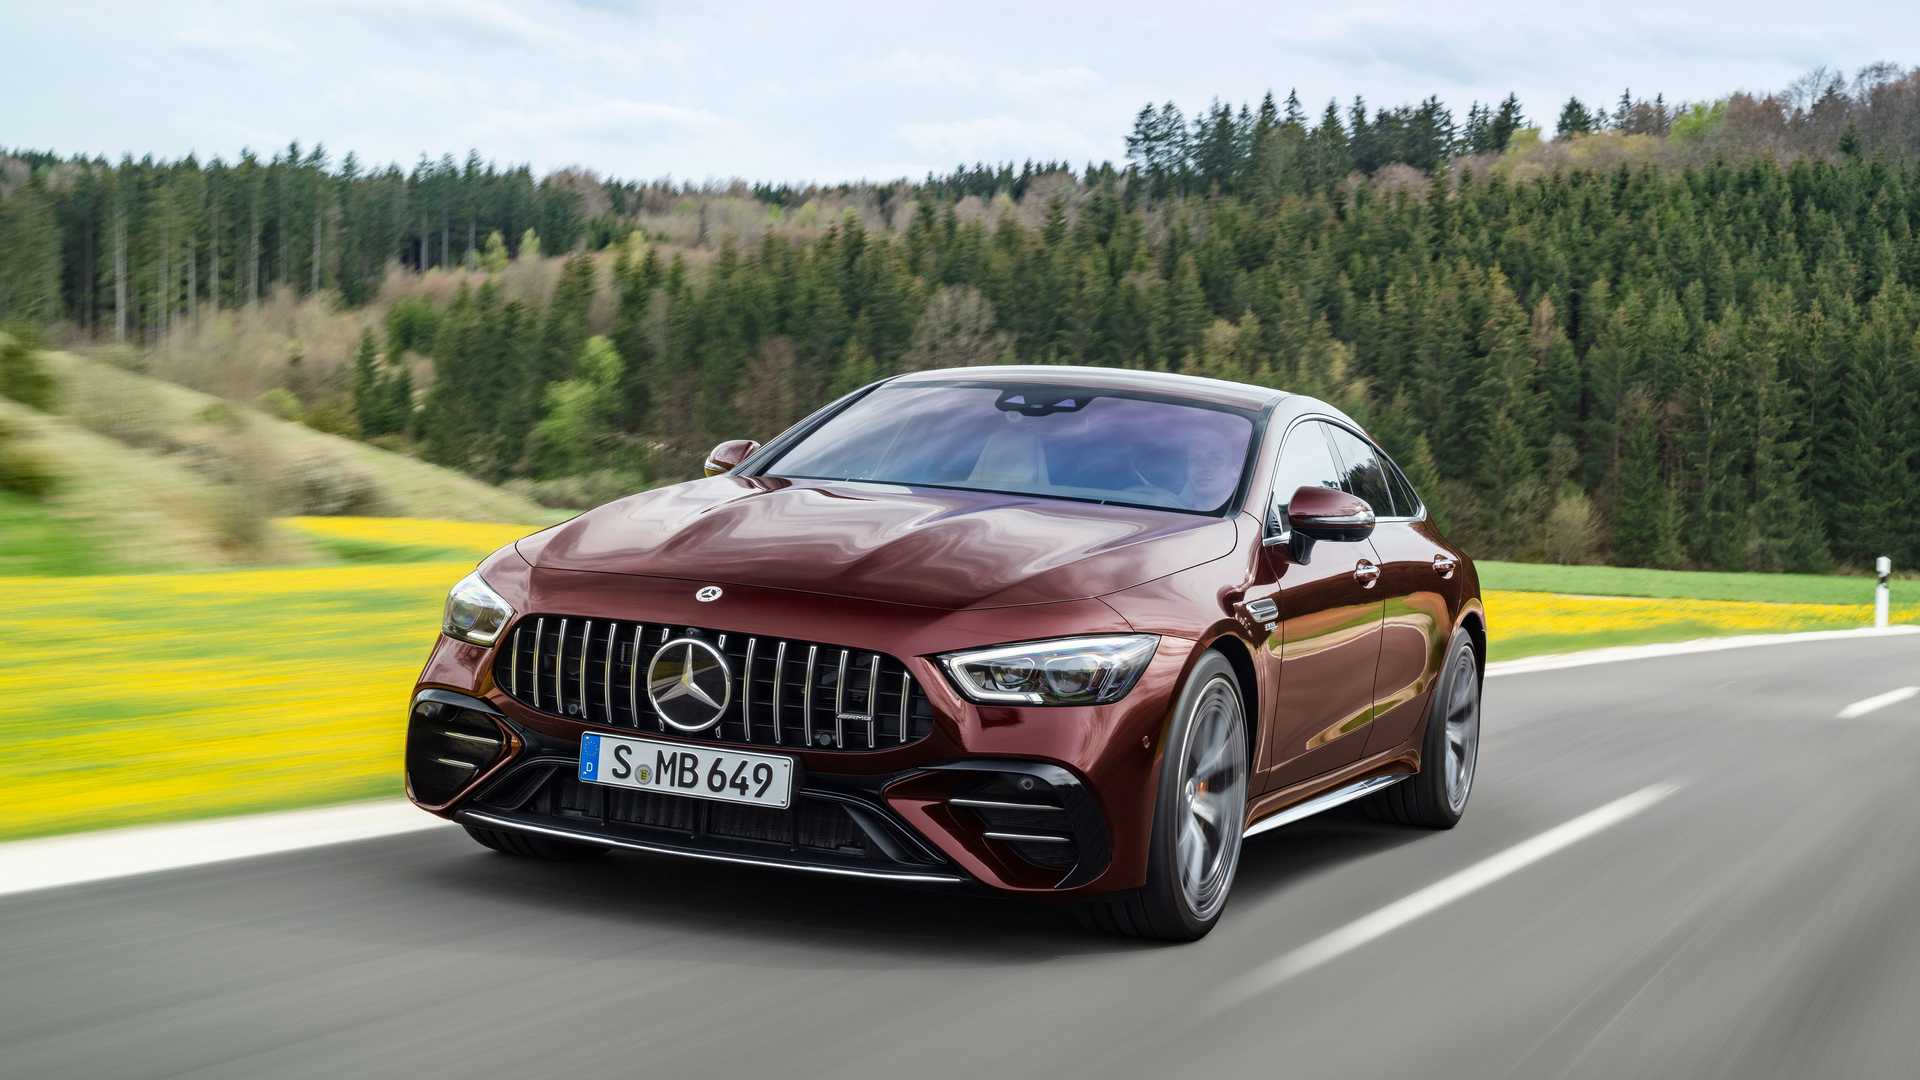 mercedes-amg gt 4door coupe lifting